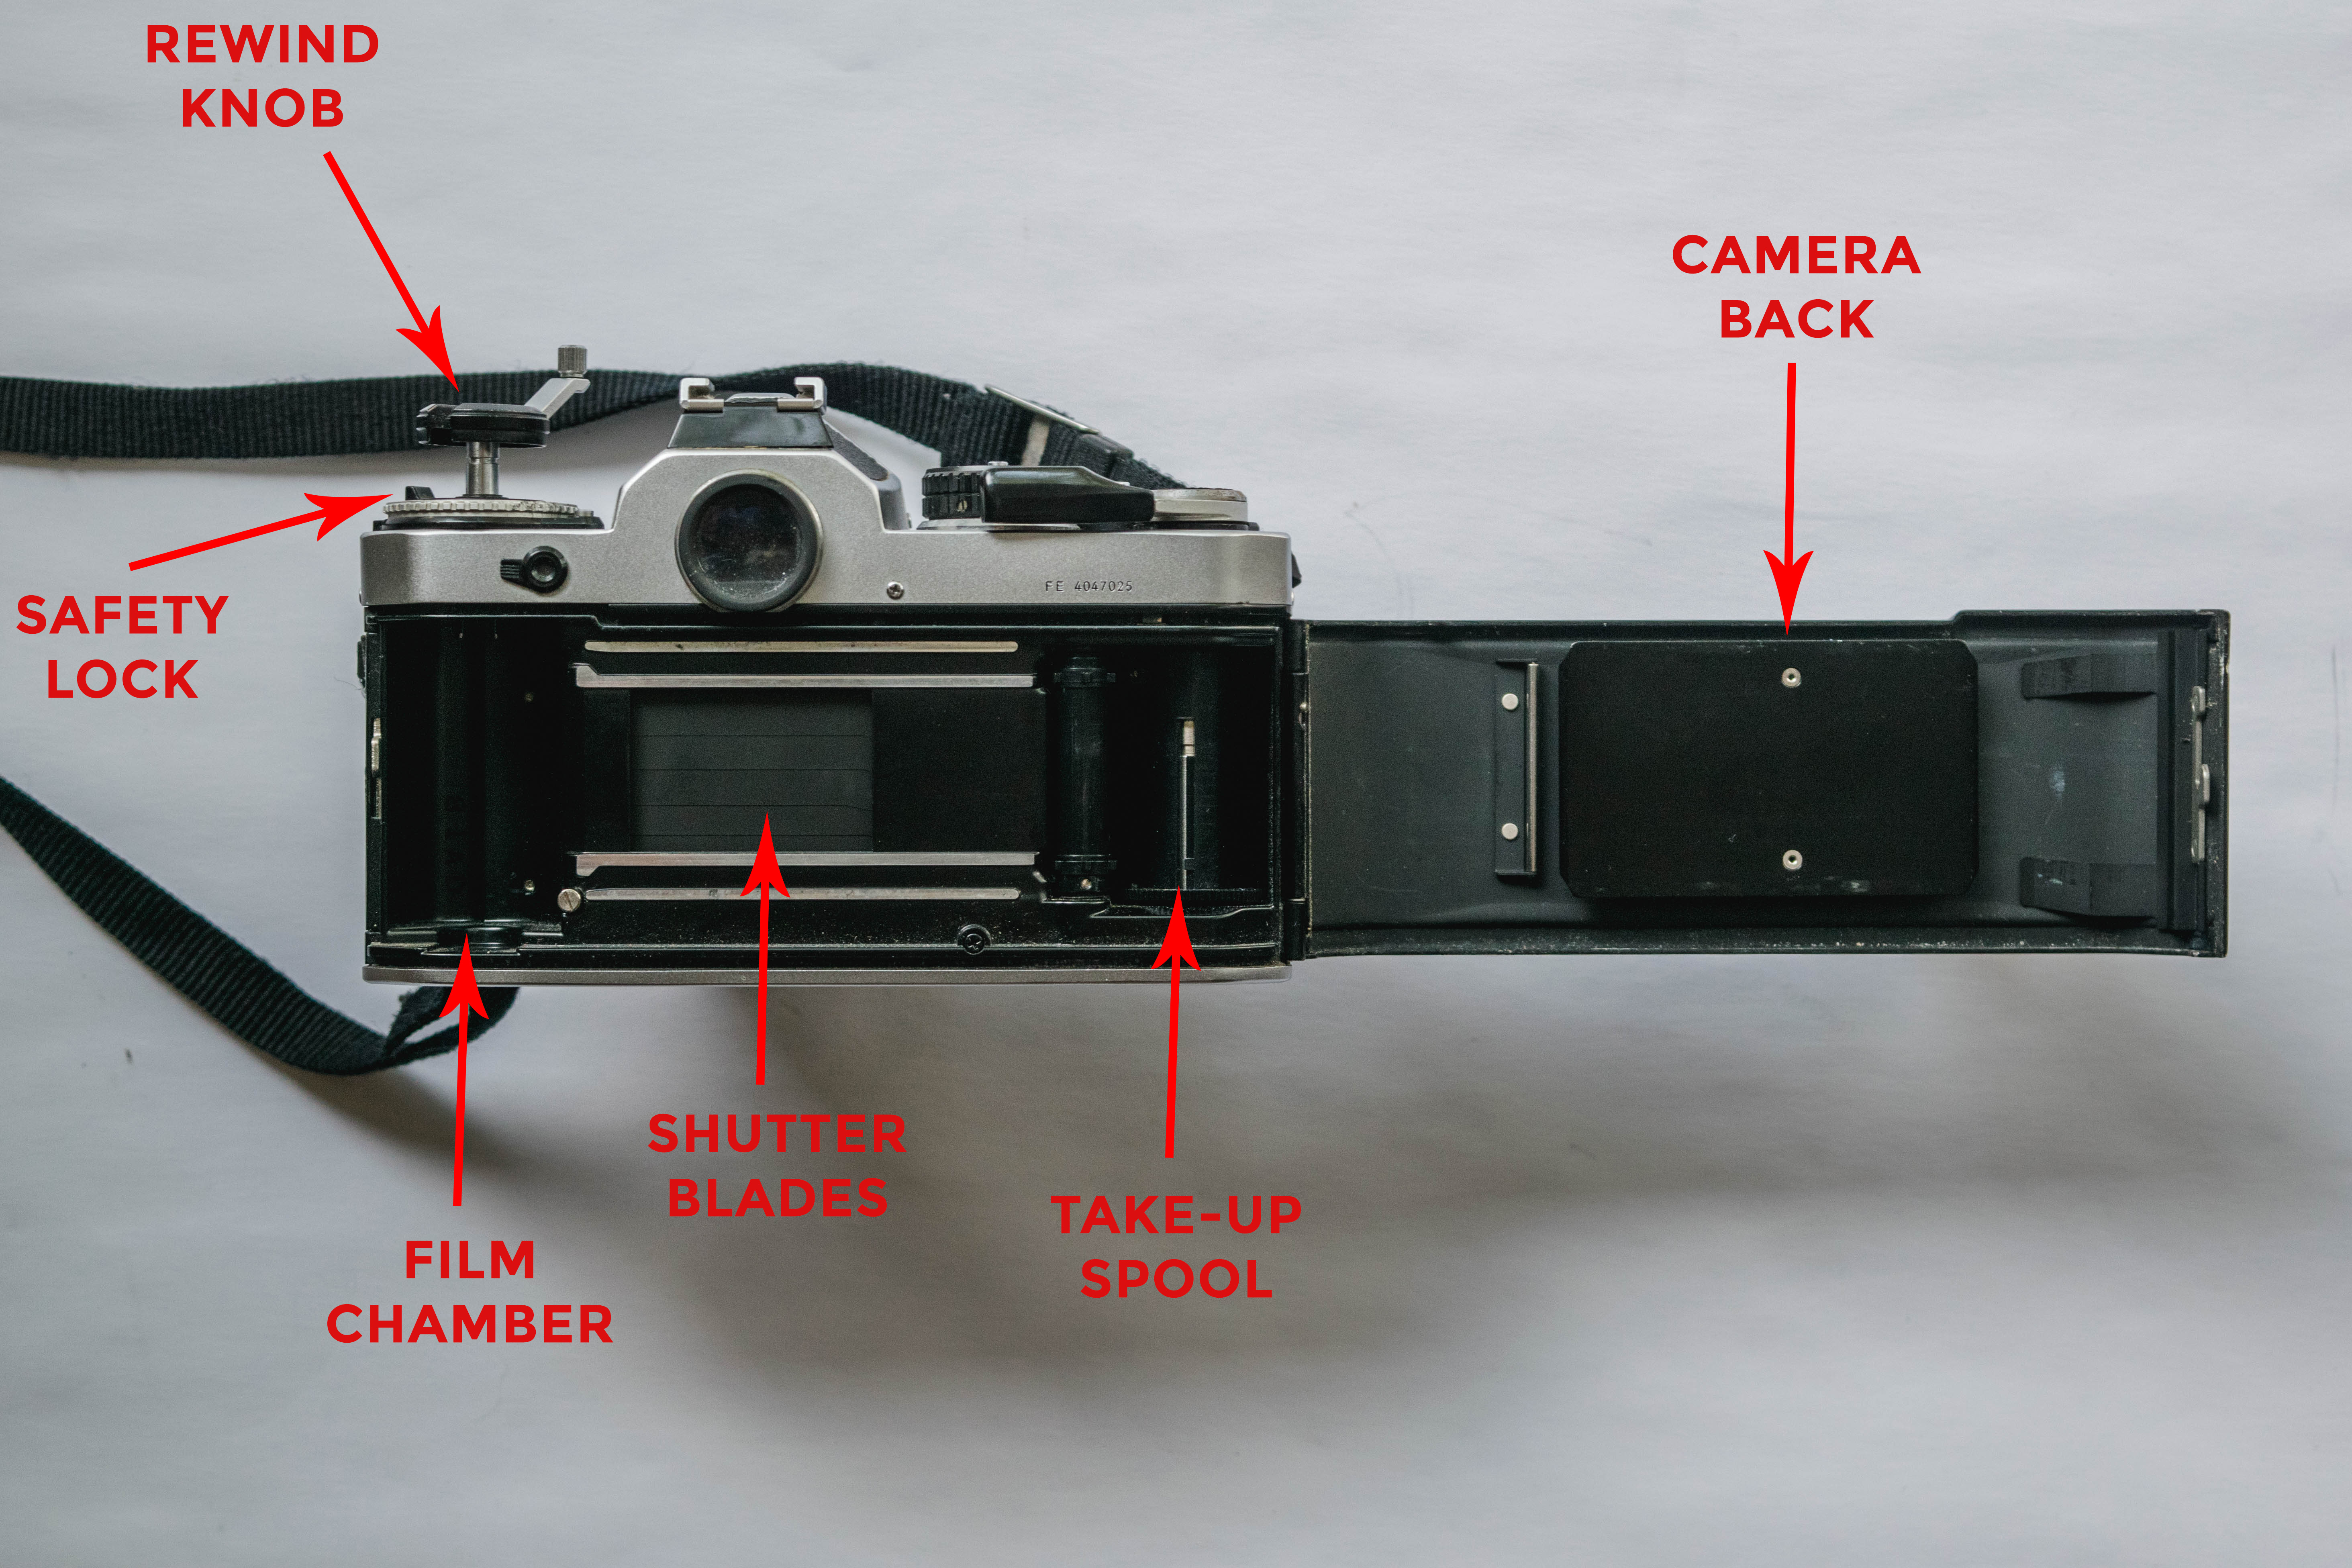 Diagram - How to Load Film into a 35mm Film Camera - FilterGrade Blog